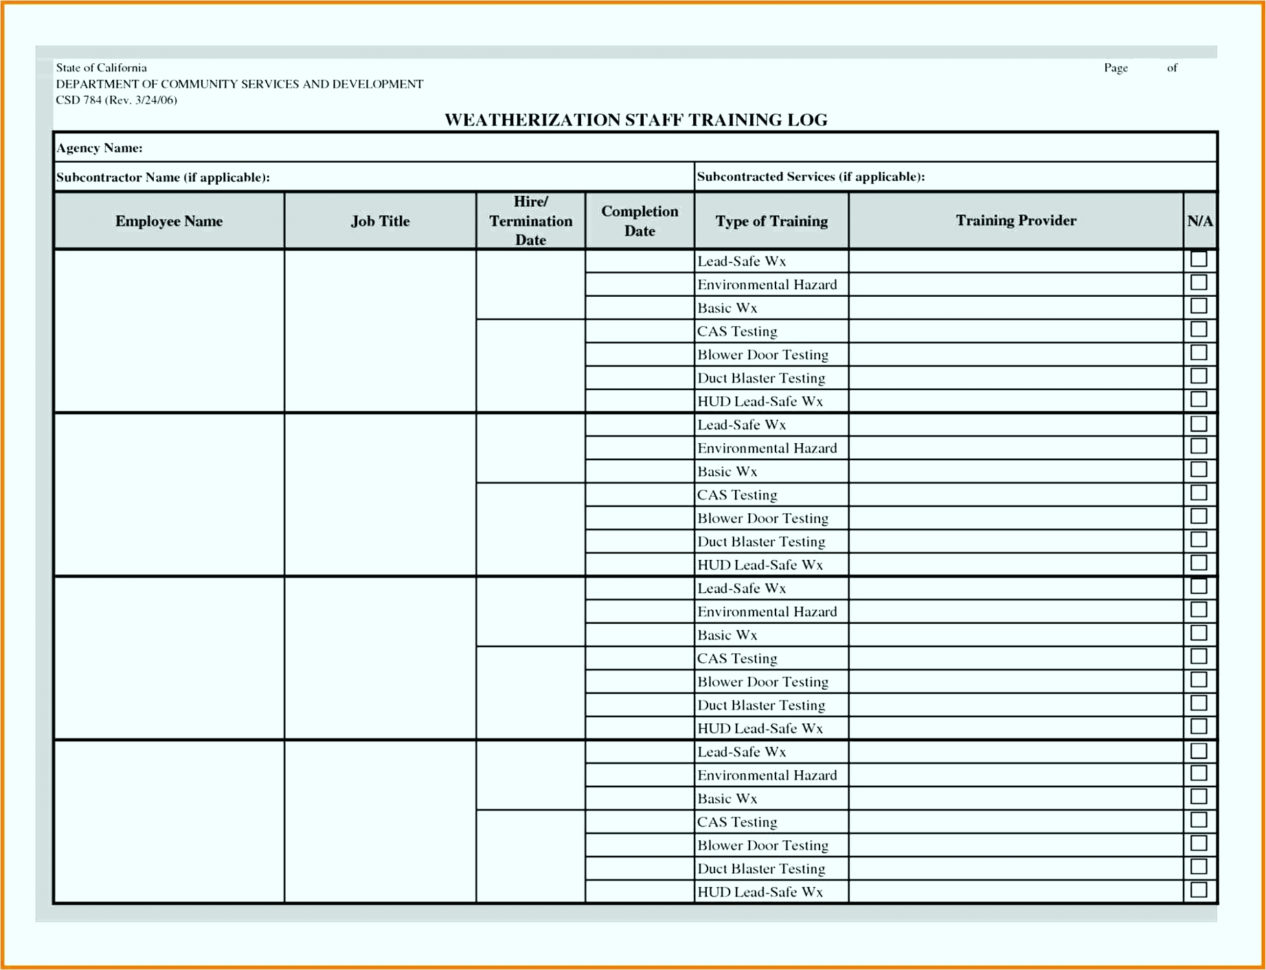 Excel Spreadsheet Server Intended For Excel Spreadsheet To Track Employee Training. Excel Spreadsheet To